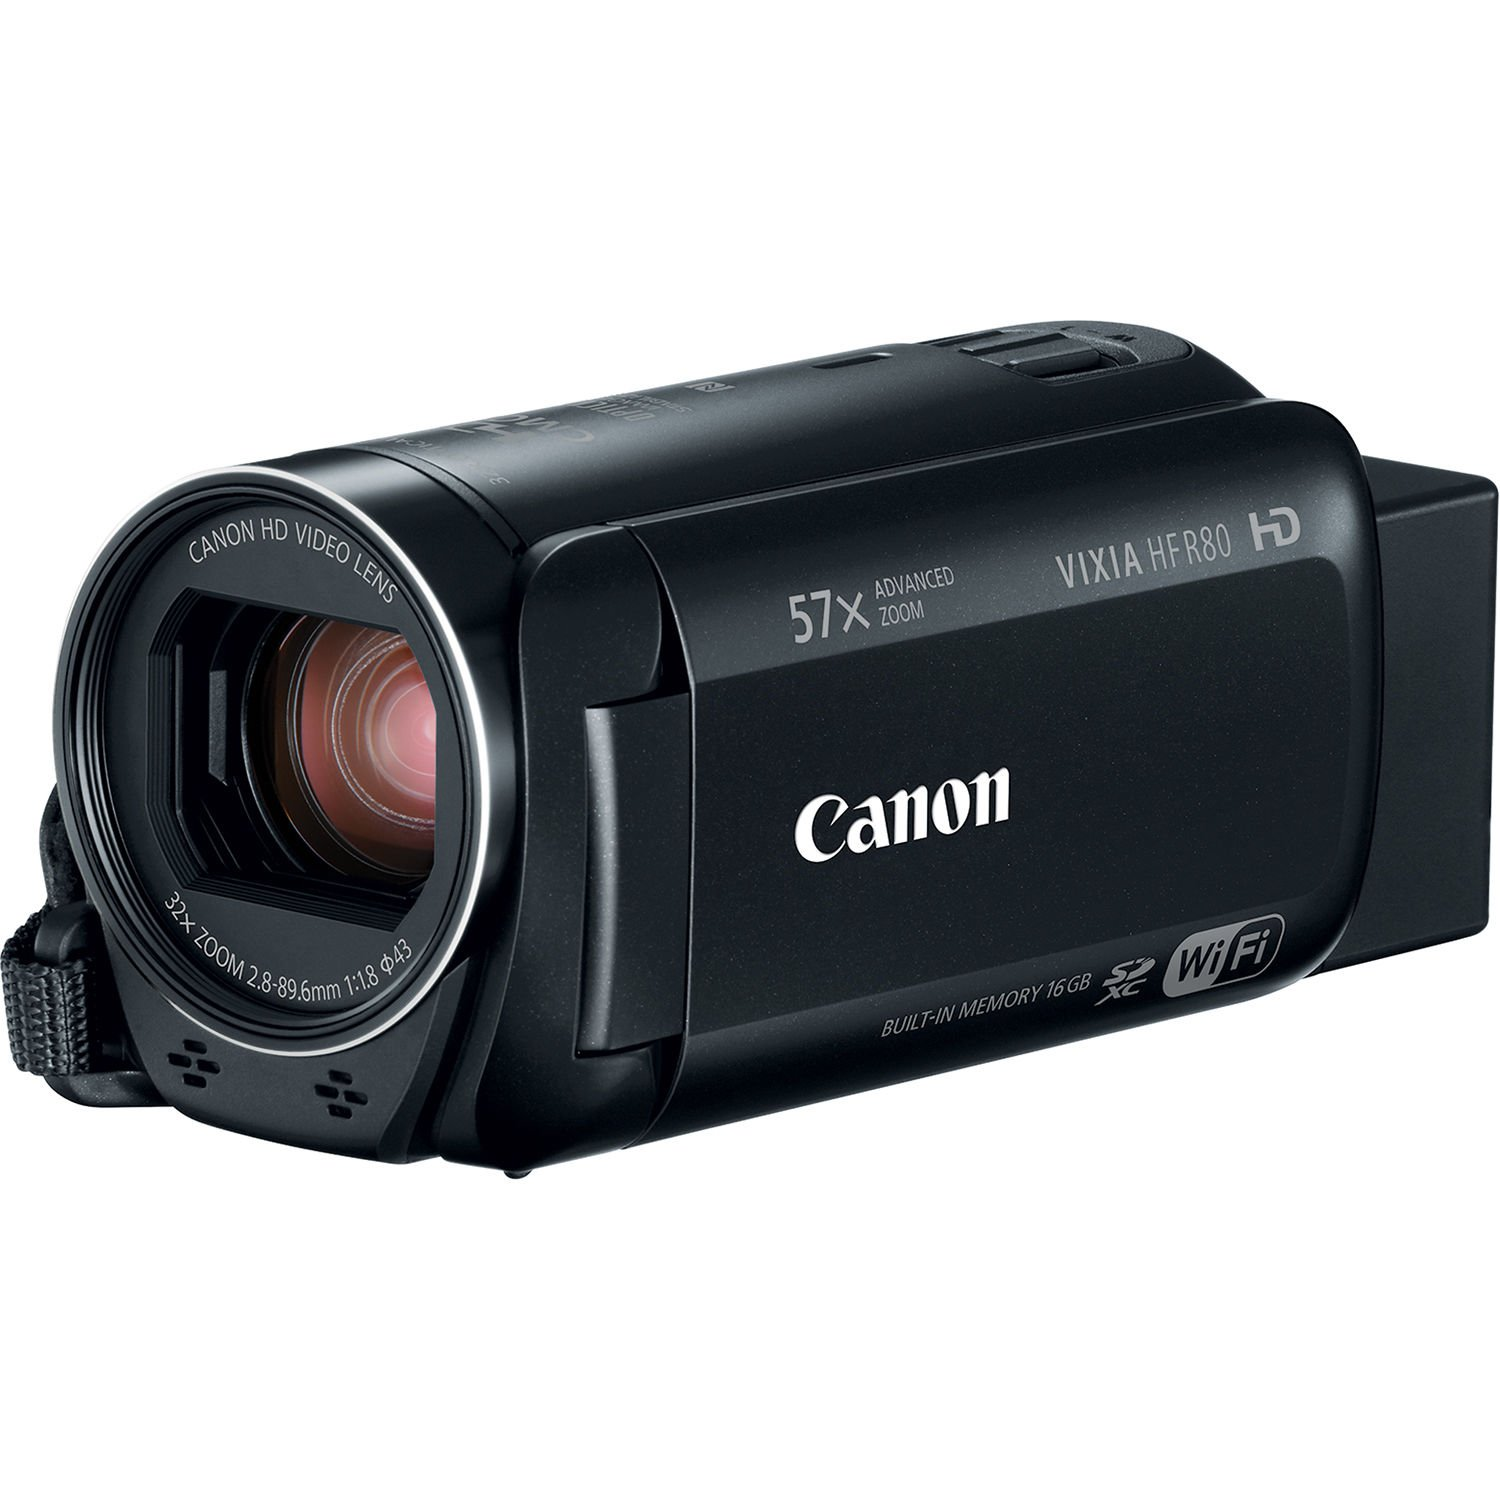 Canon VIXIA HF R80 Full HD Camcorder with 57x Advanced Zoom, 1080P Video, 3'' Touchscreen and DIGIC DV 4 Image Processor - Black (Certified Refurbished)